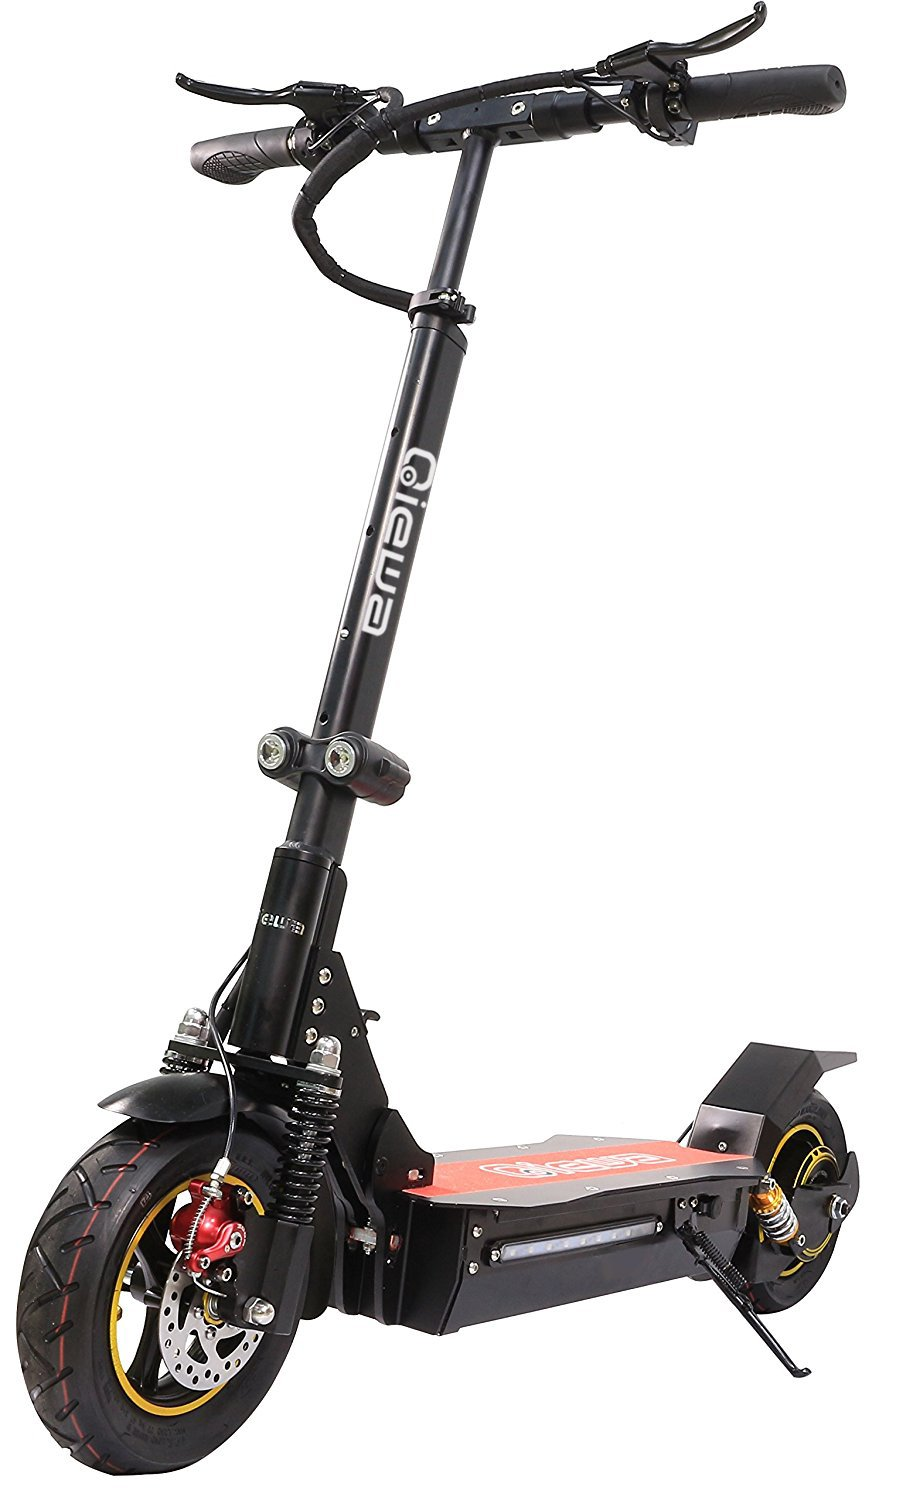 16 Best Electric Scooters for Commuting [2019 Guide & Review]